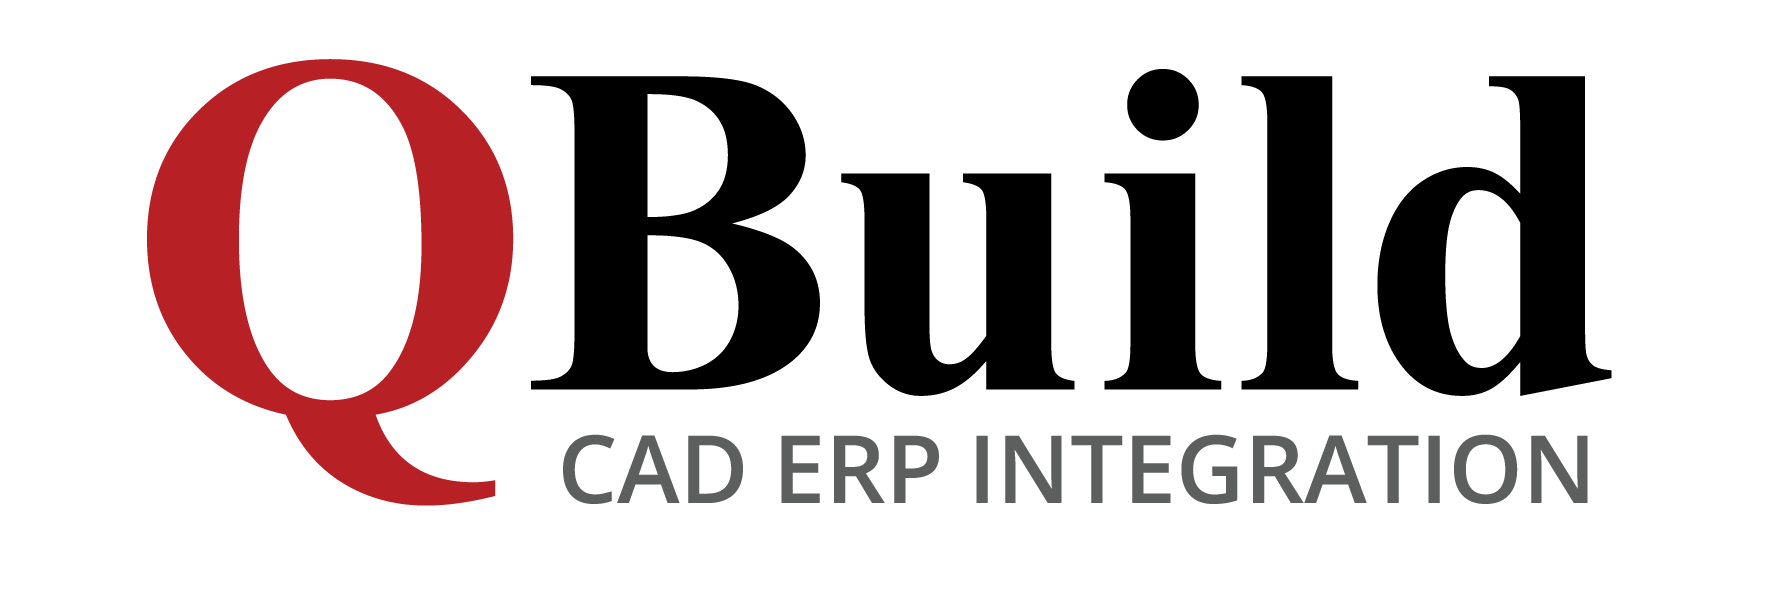 Connecting CAD & ERP Systems